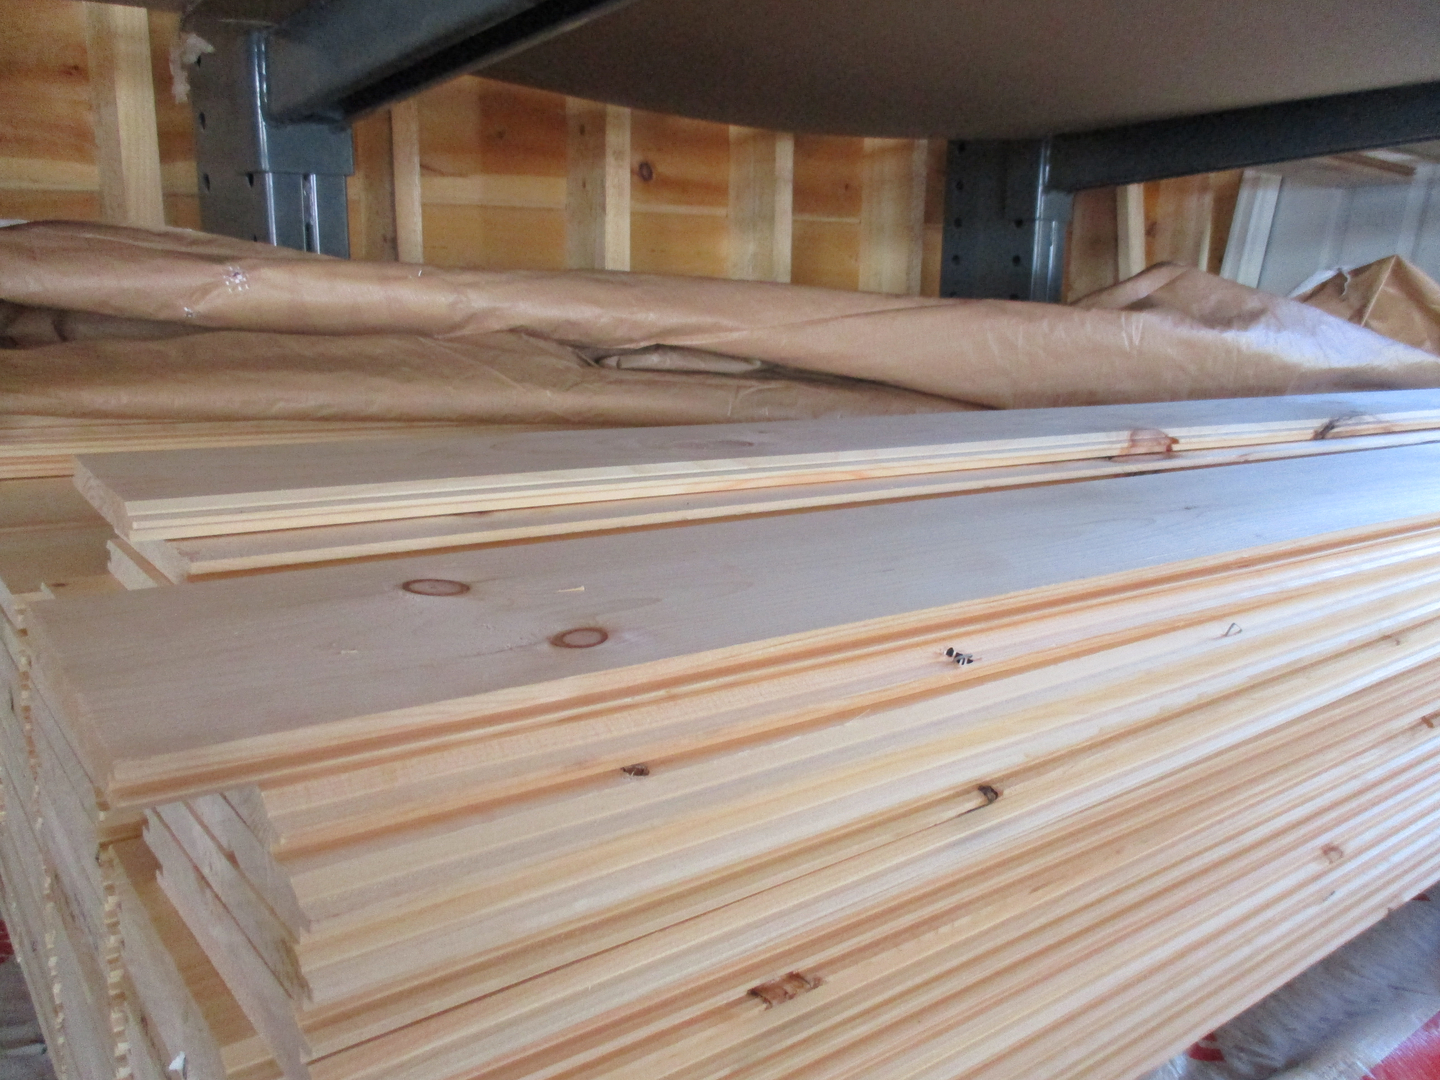 WE SELL LUMBER V Match C Select D4S Shiplap And 7 8 Industrial D1S2E